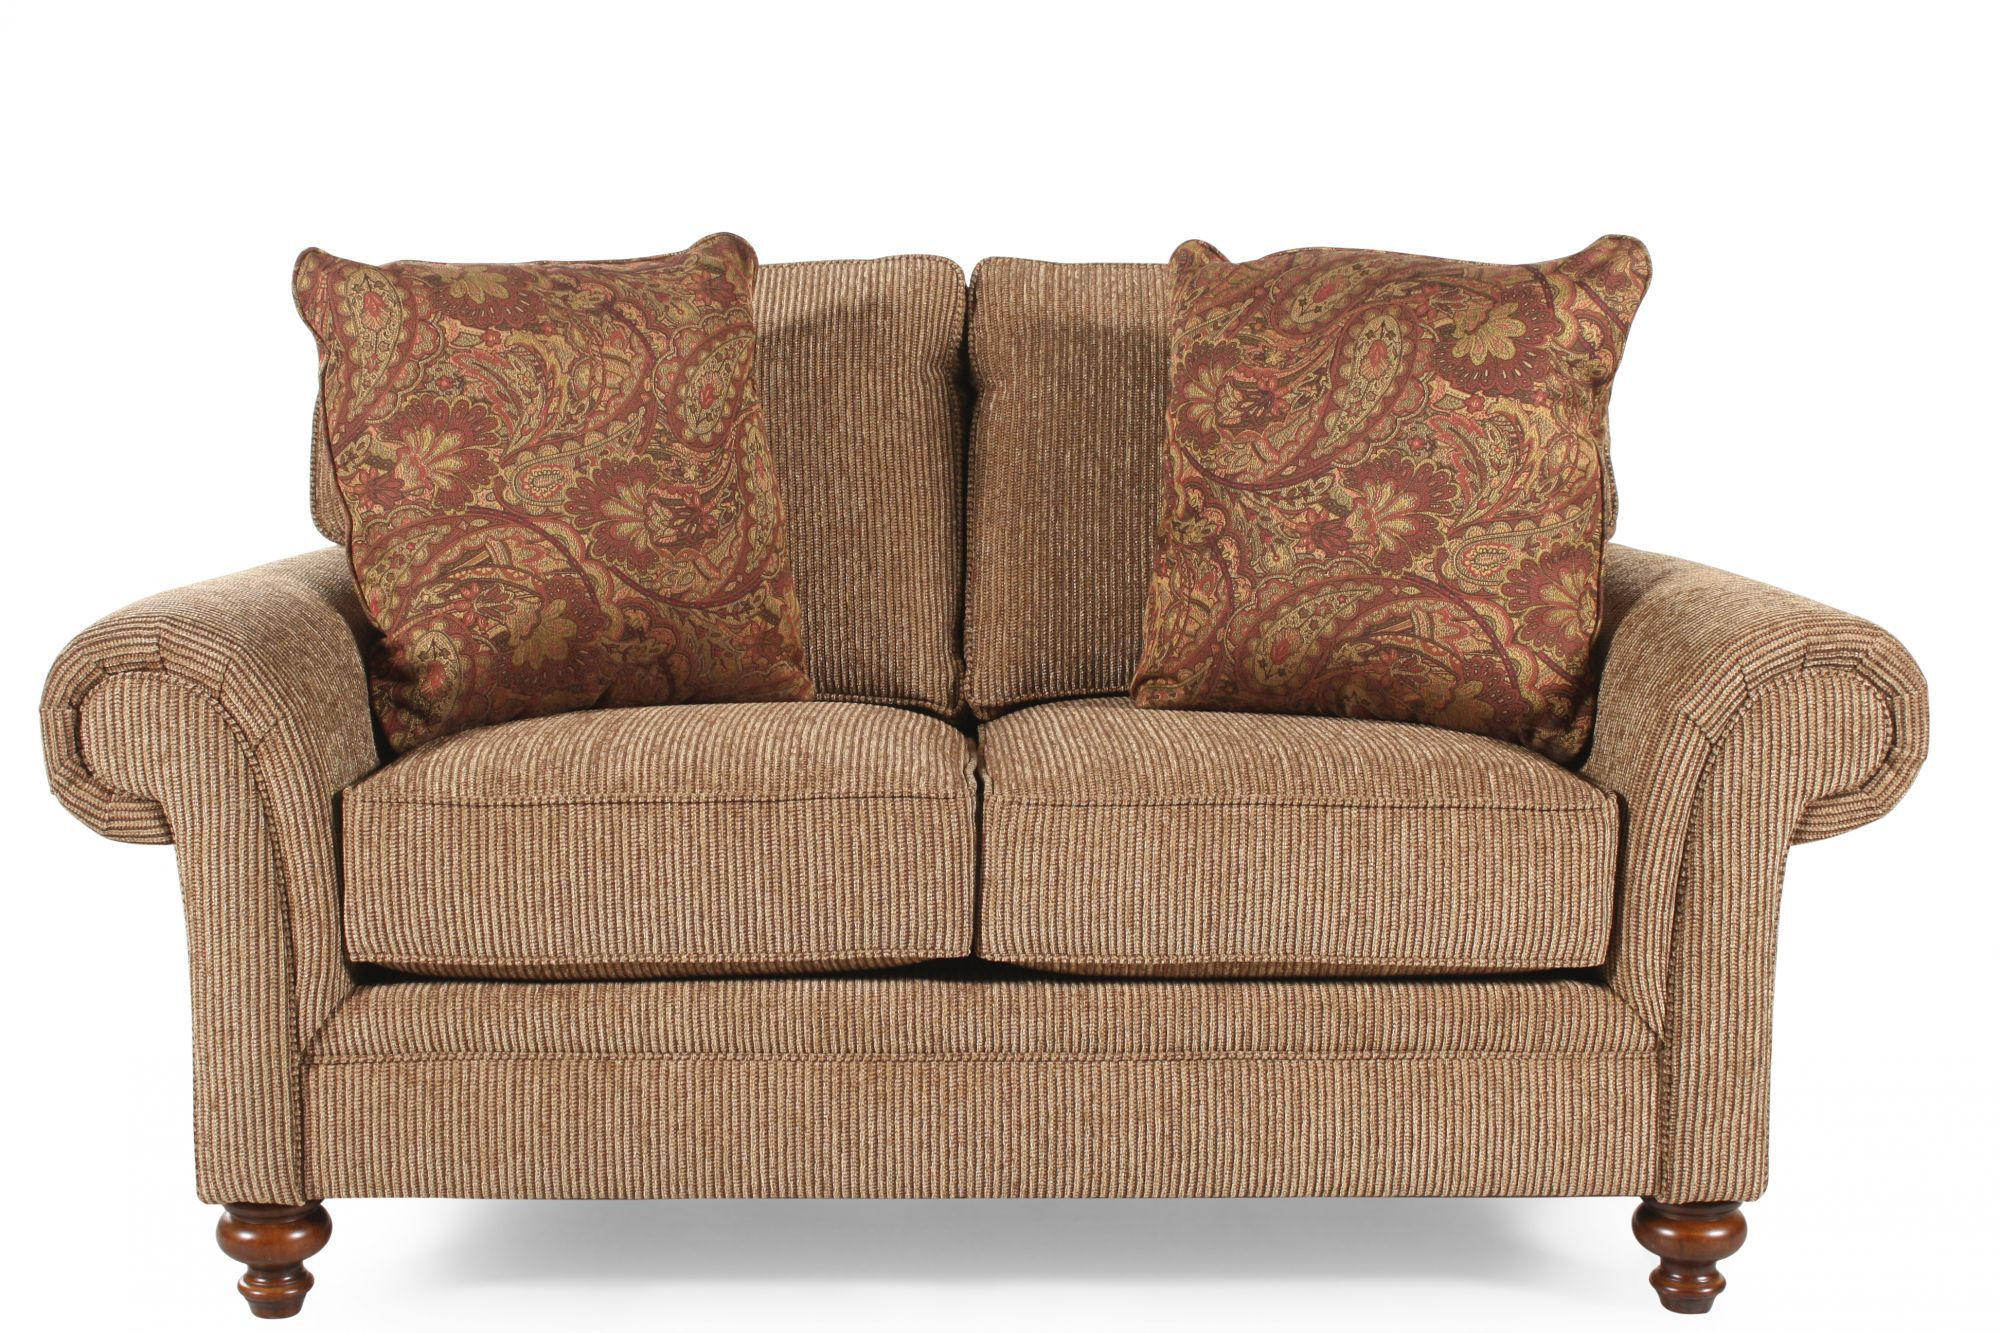 Textured Traditional 66 Loveseat in NutBrown  Mathis